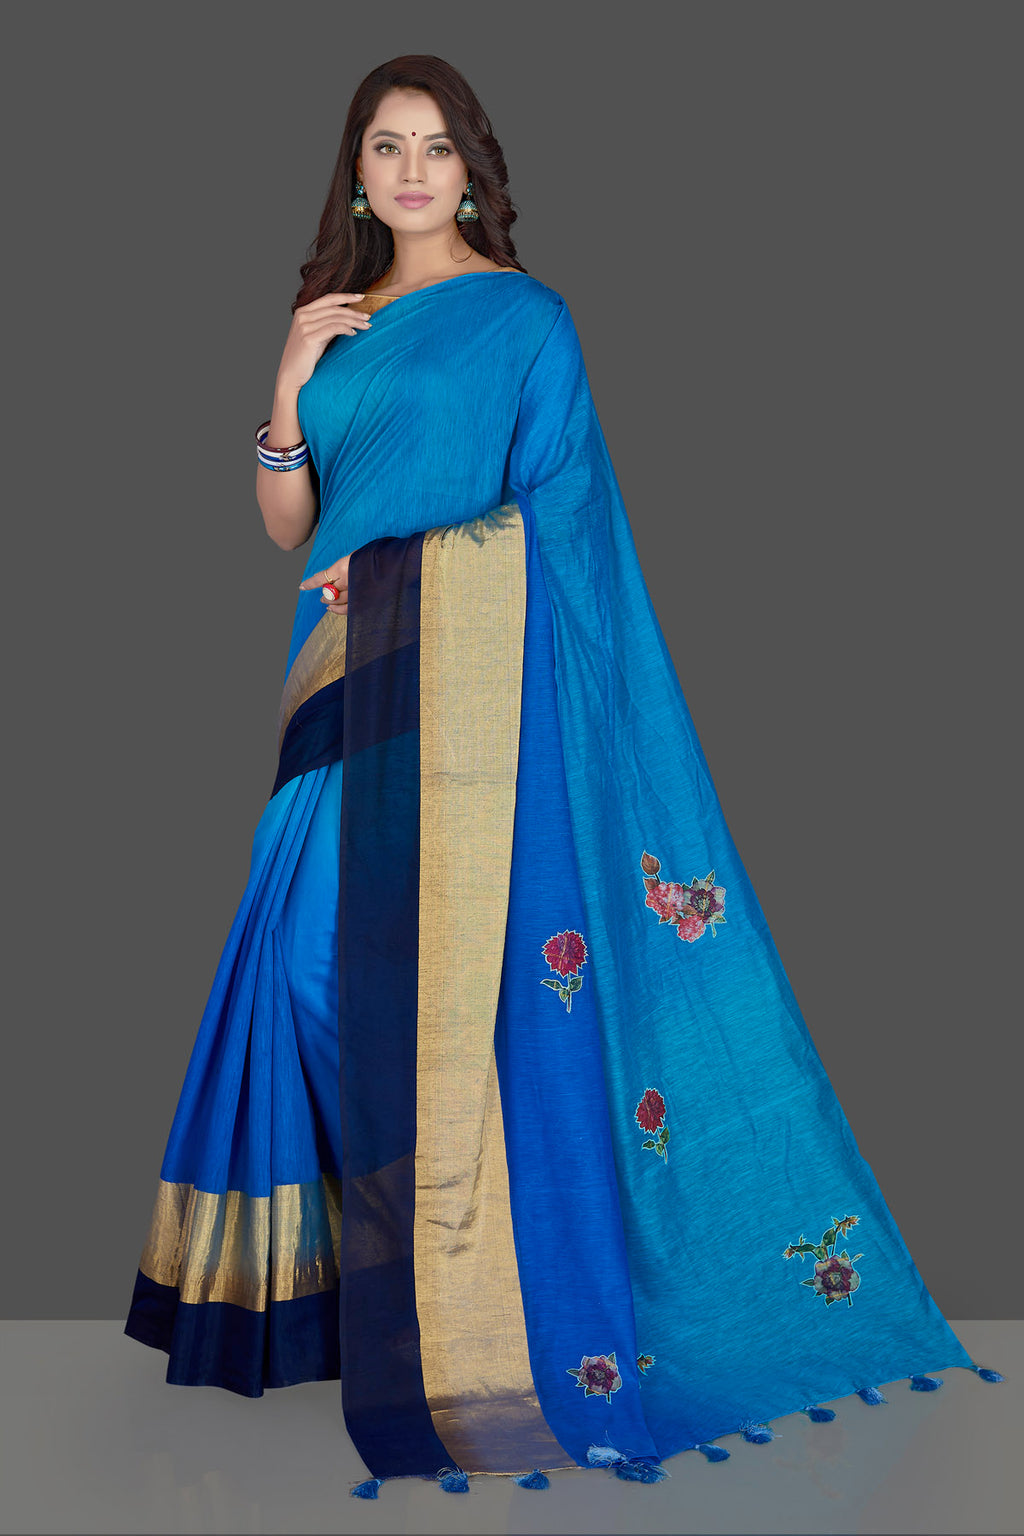 Shop charming blue floral applique linen sari online in USA with powder blue floral saree blouse. Radiate elegance with designer sarees with blouse, linen sarees from Pure Elegance Indian fashion boutique in USA. We bring a especially curated collection of ethnic saris for Indian women in USA under one roof!-full view